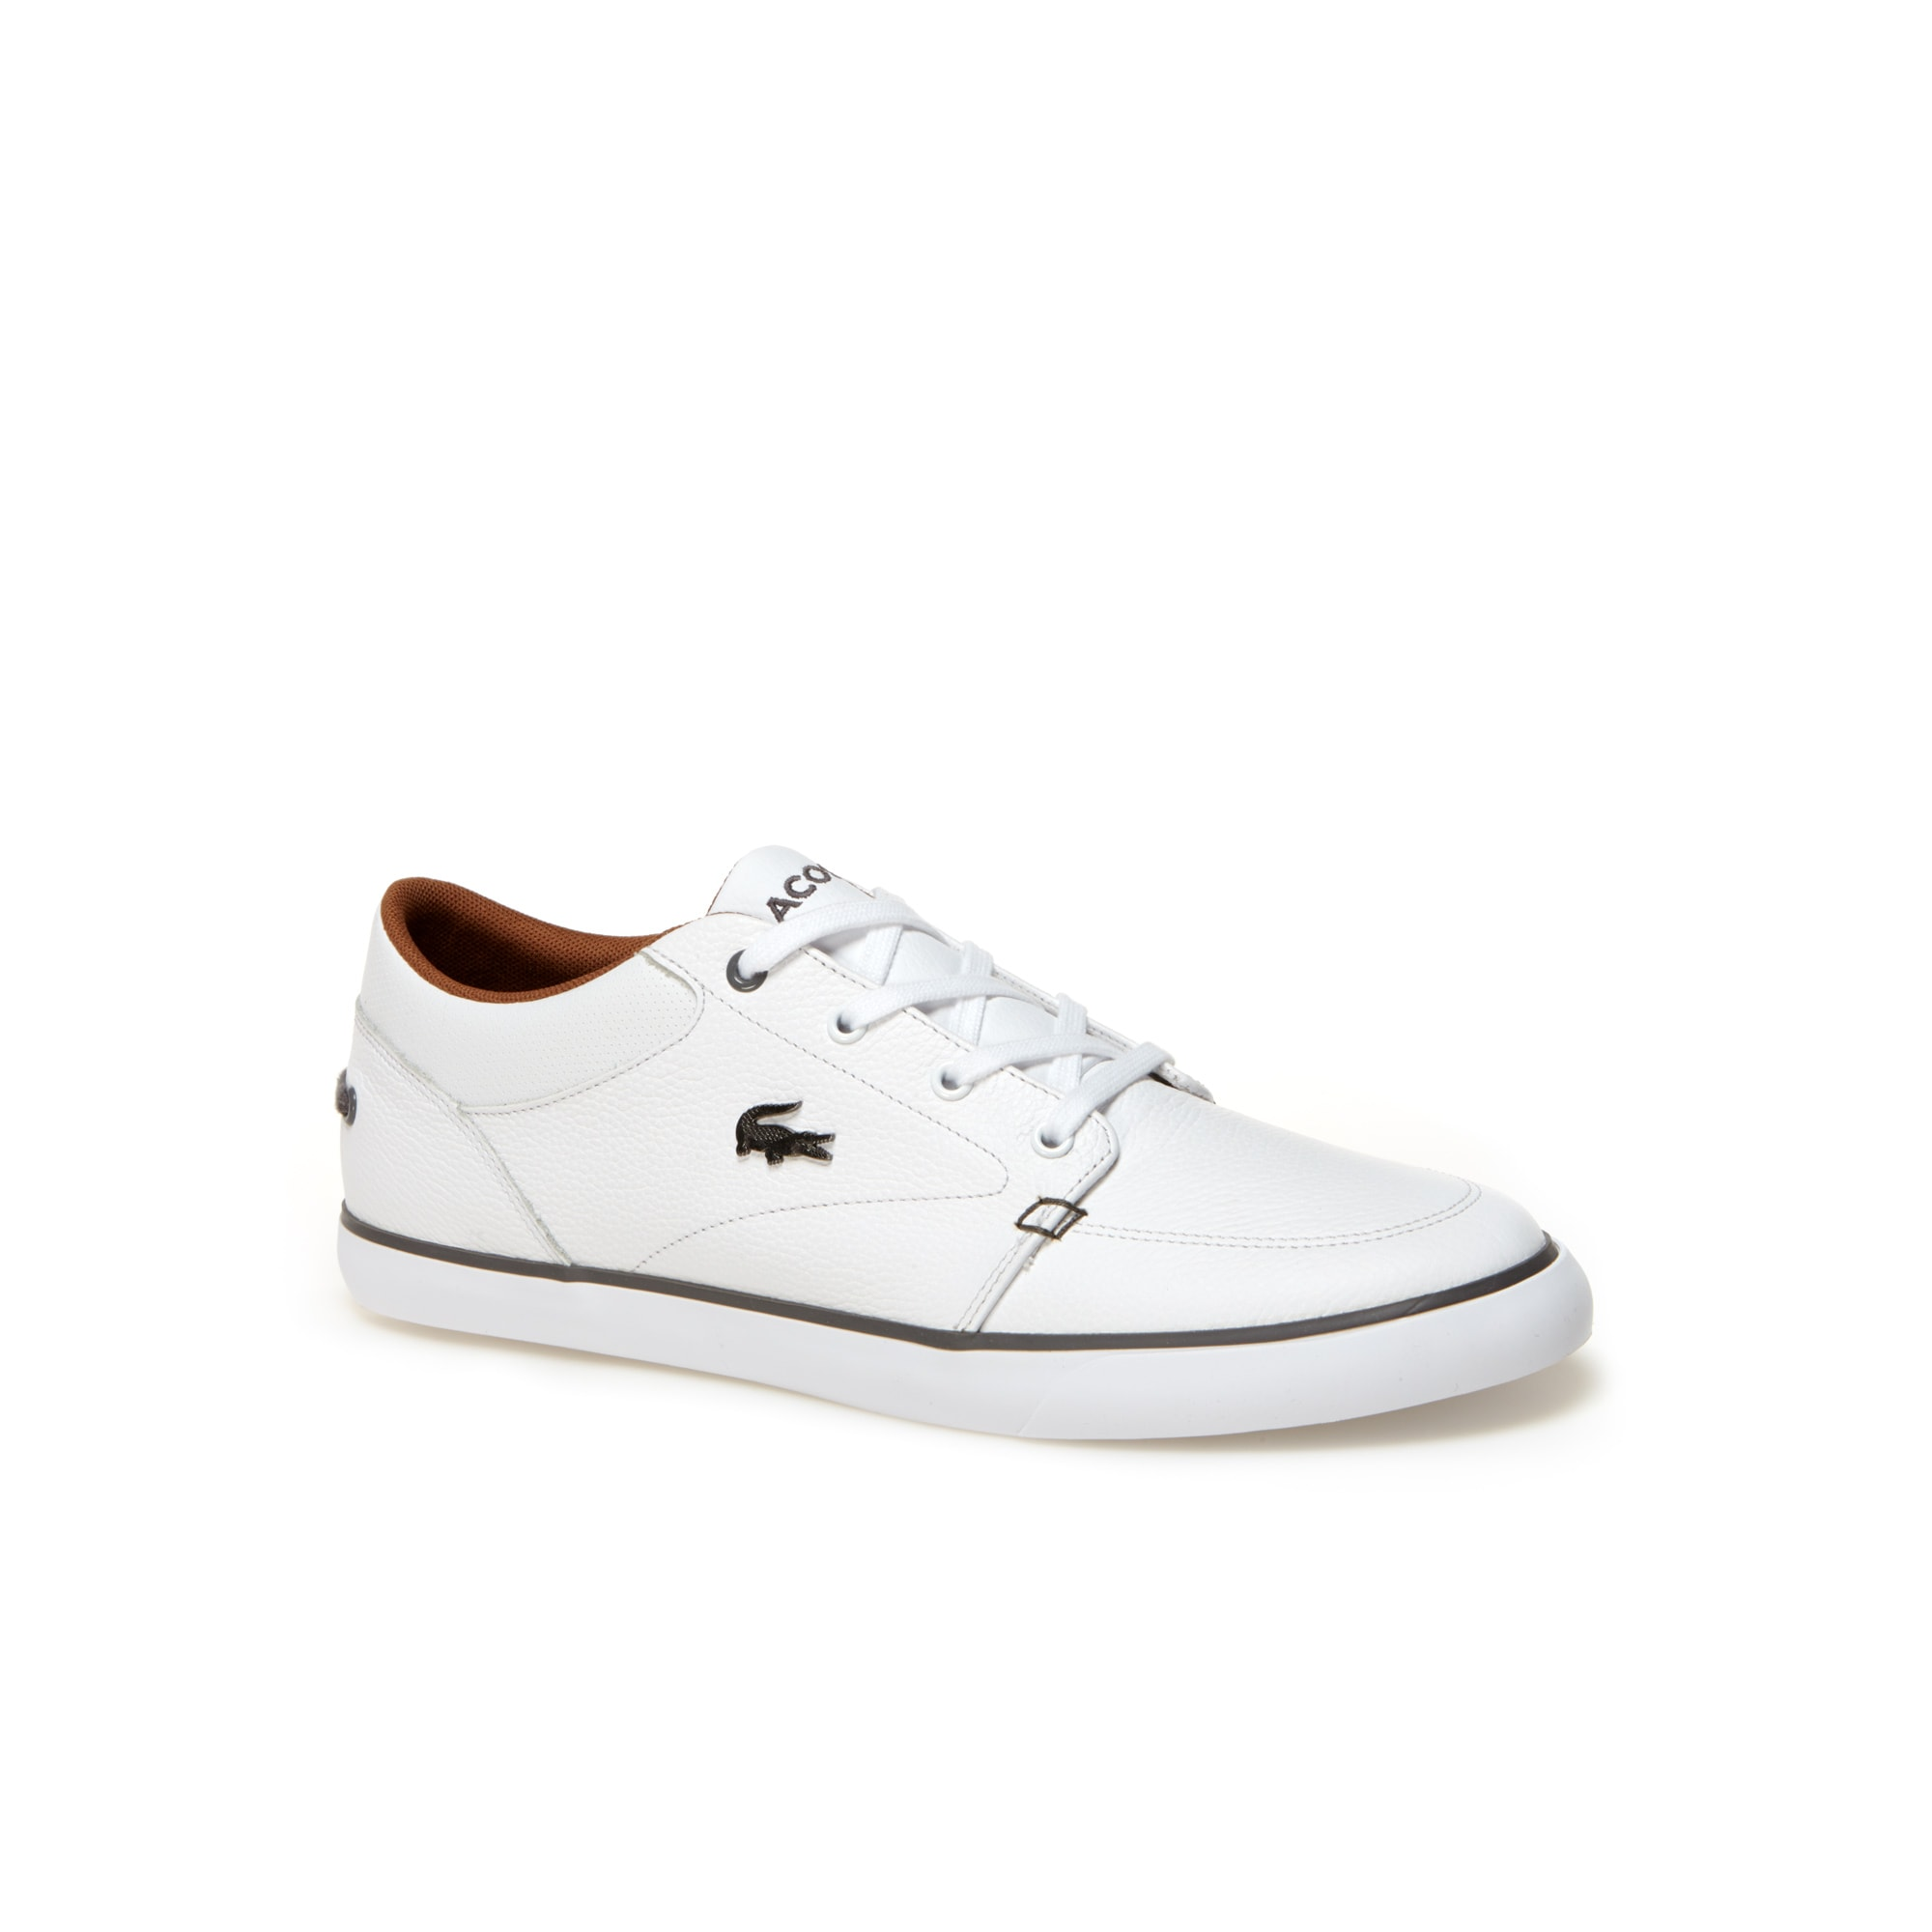 Men's Bayliss Vulc Leather Trainers